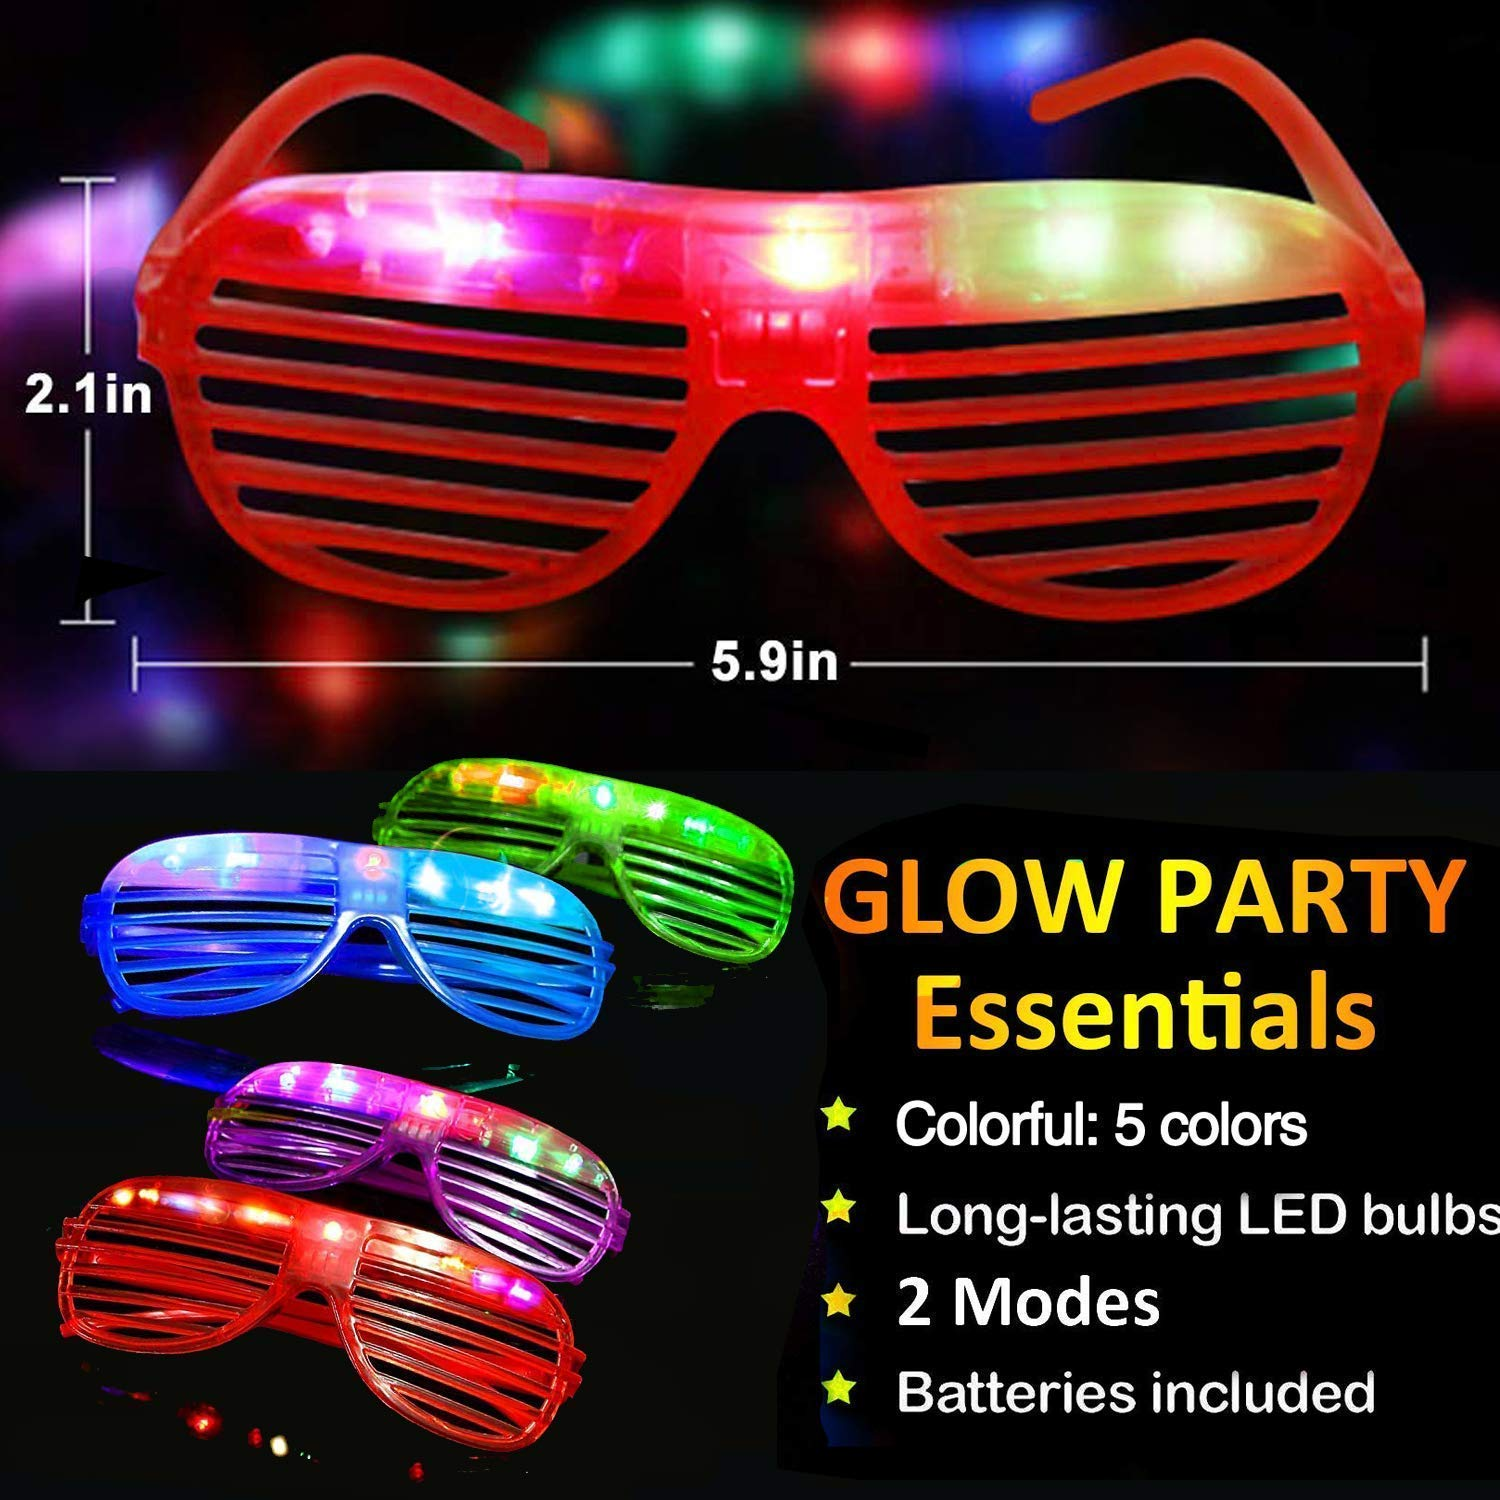 TURNMEON 20 Pack LED Glasses,5 Color Light Up Plastic Shutter Shades Glasses Shades Sunglasses for Adults Kids Glow in the Dark Party Favors Neon Party Supplies Independence Day Glow Toy by TURNMEON (Image #5)